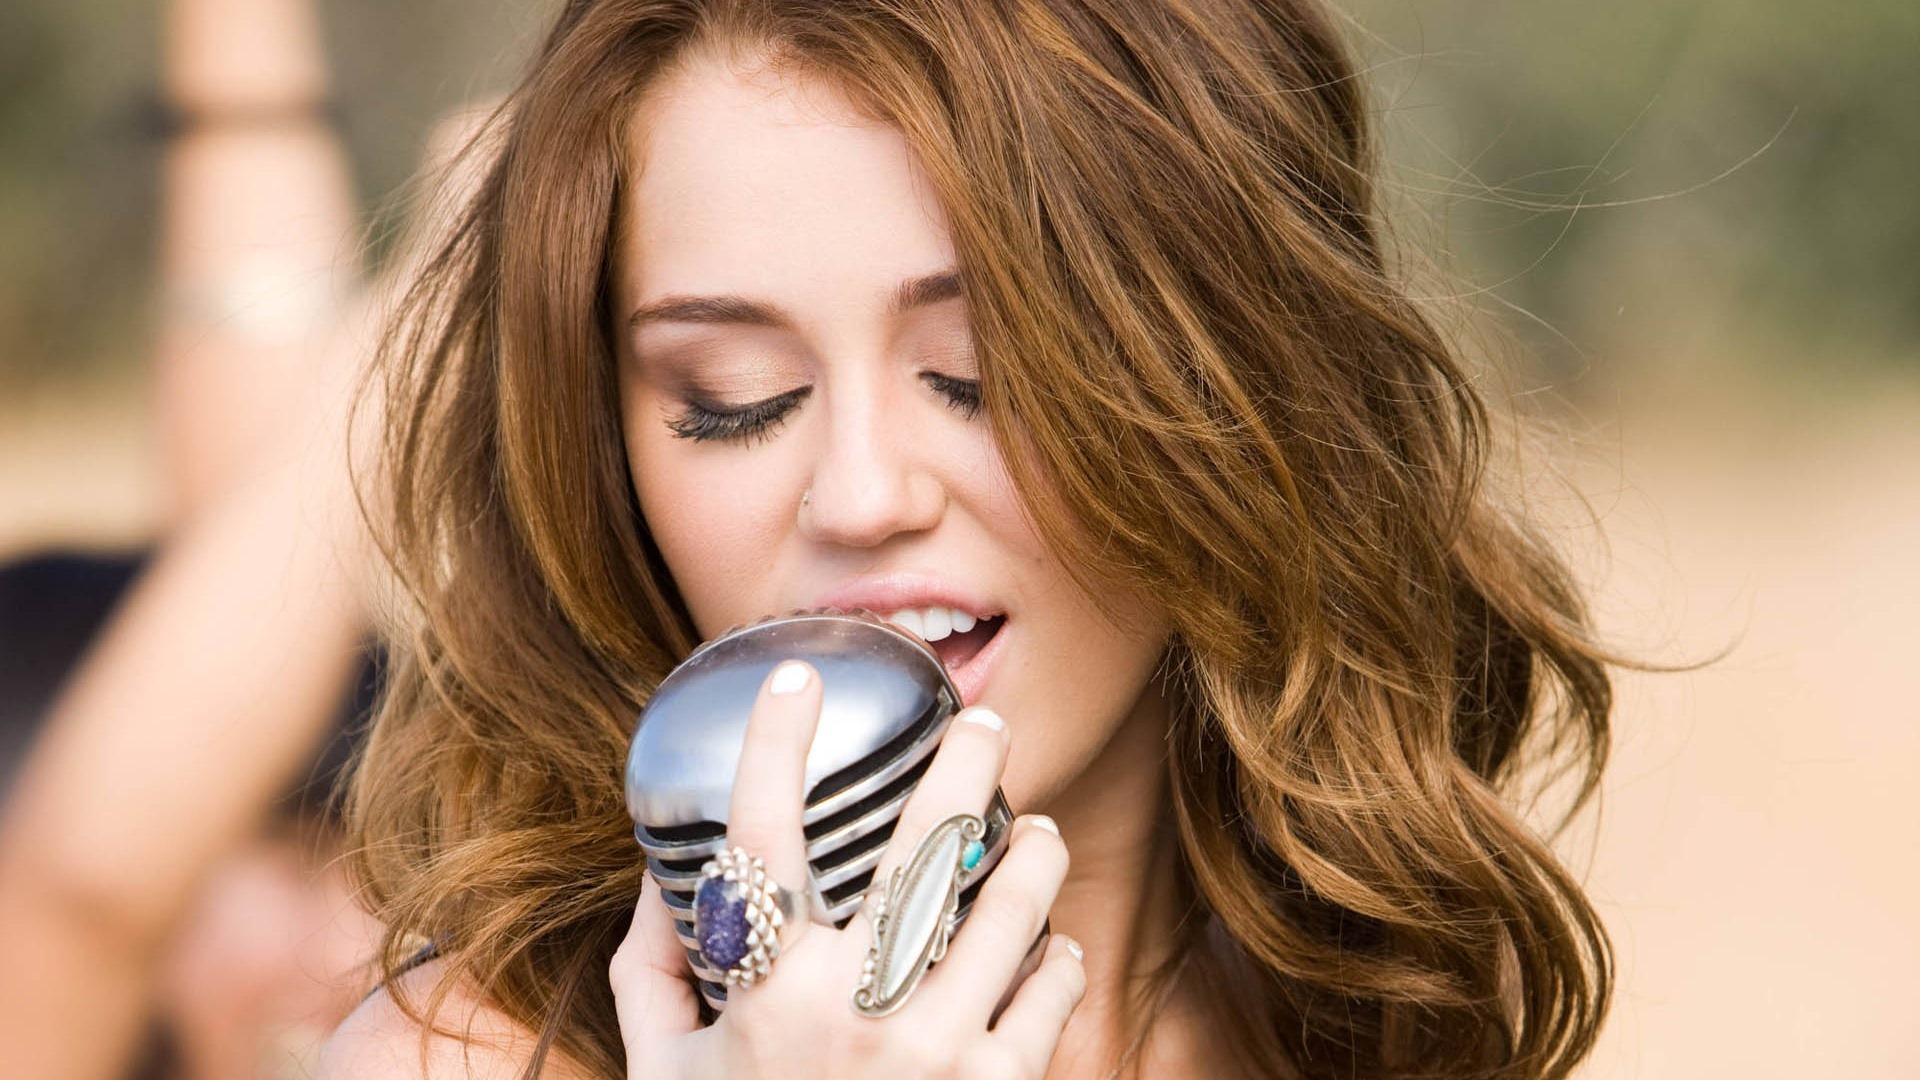 miley cyrus backgrounds - wallpaper, high definition, high quality